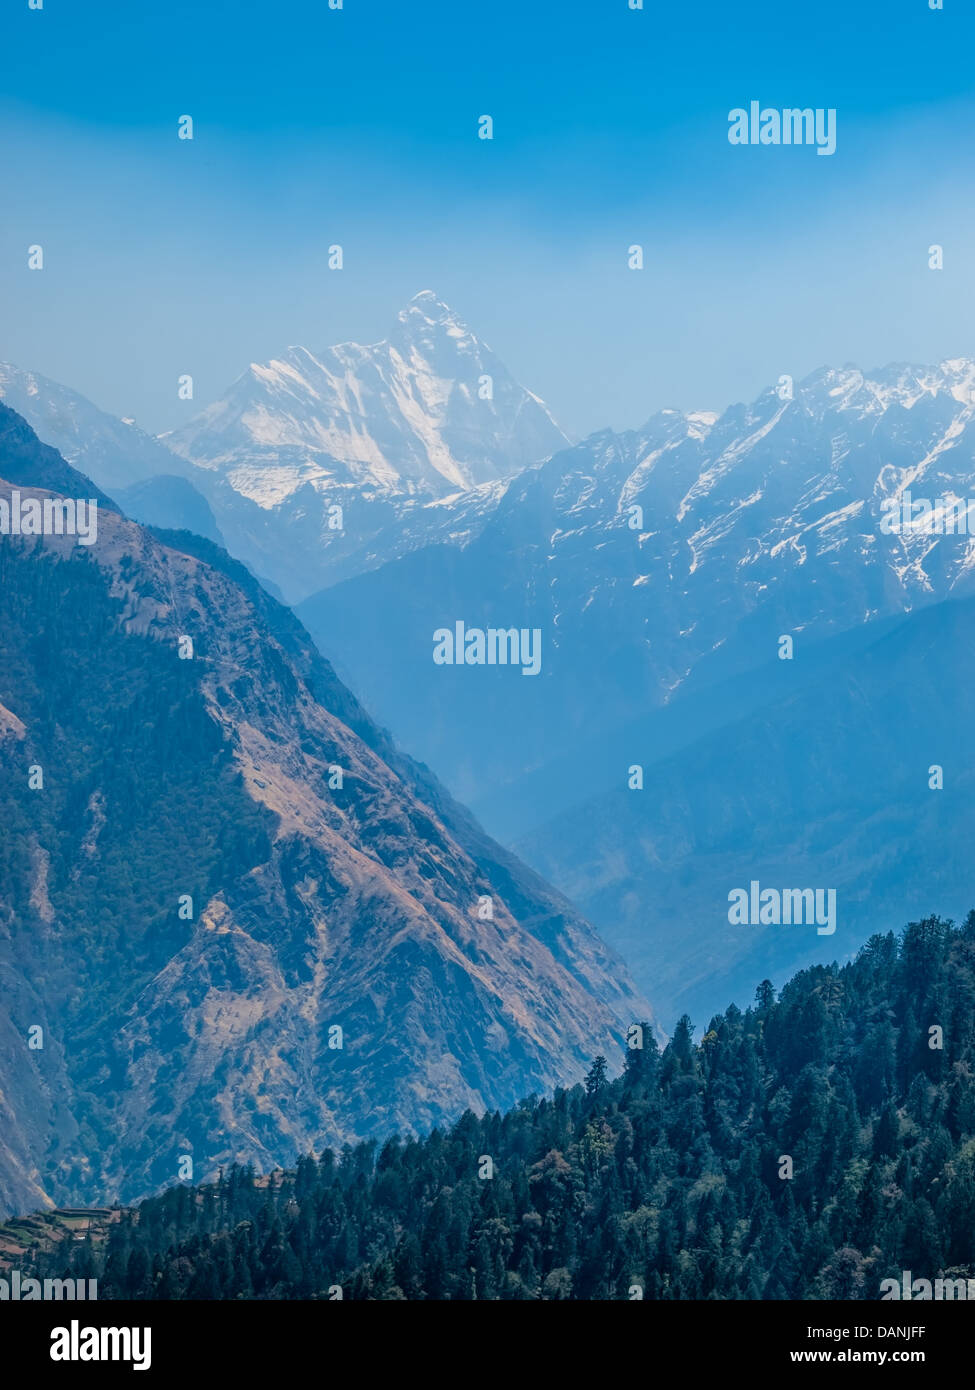 Himalayan landscape in the early morning, India. - Stock Image